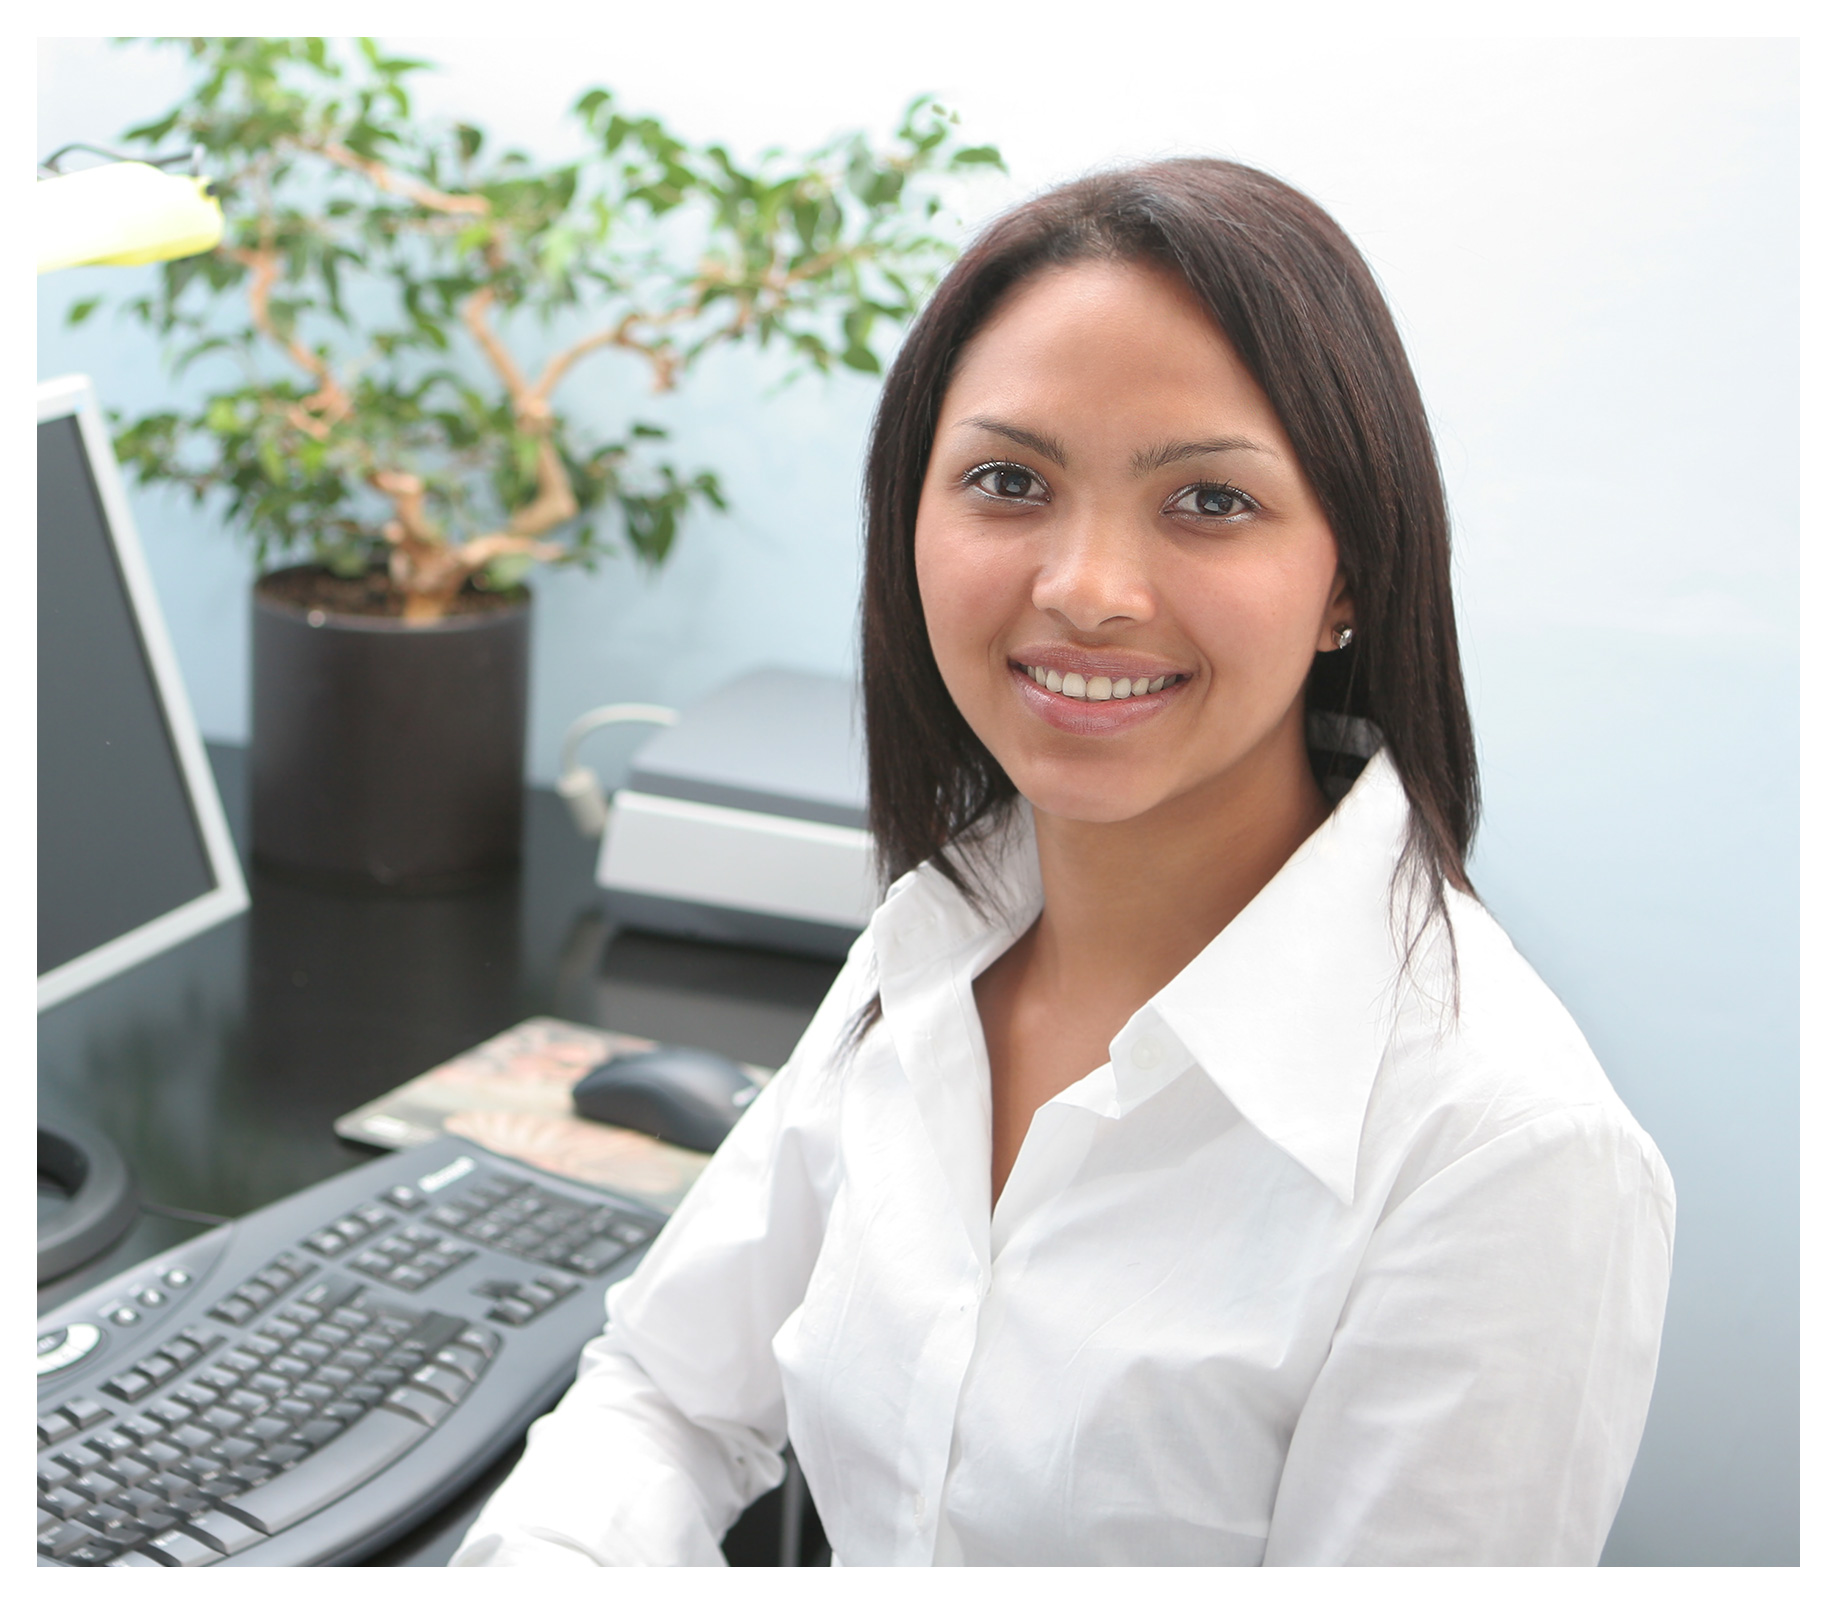 Portrait photography for corporate marketing: Friendly receptionist